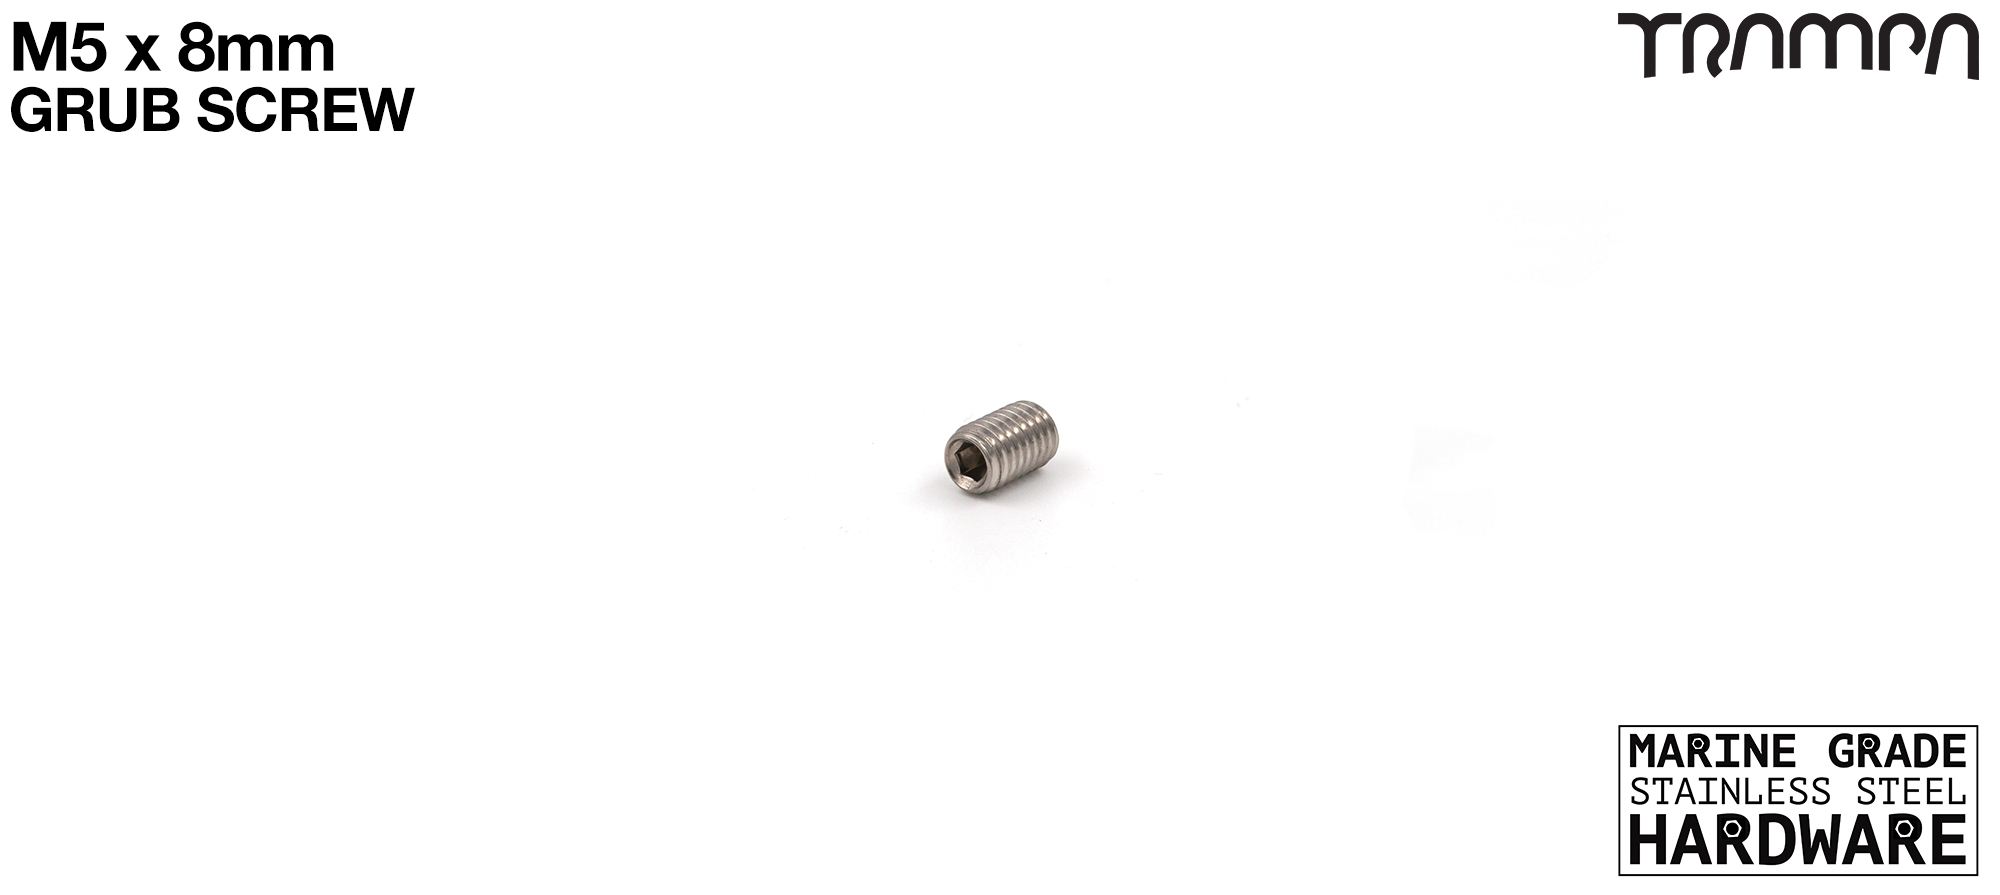 M5 x 8mm Grub Screw Marine Grade Stainless Steel - Used in bull bar assembly